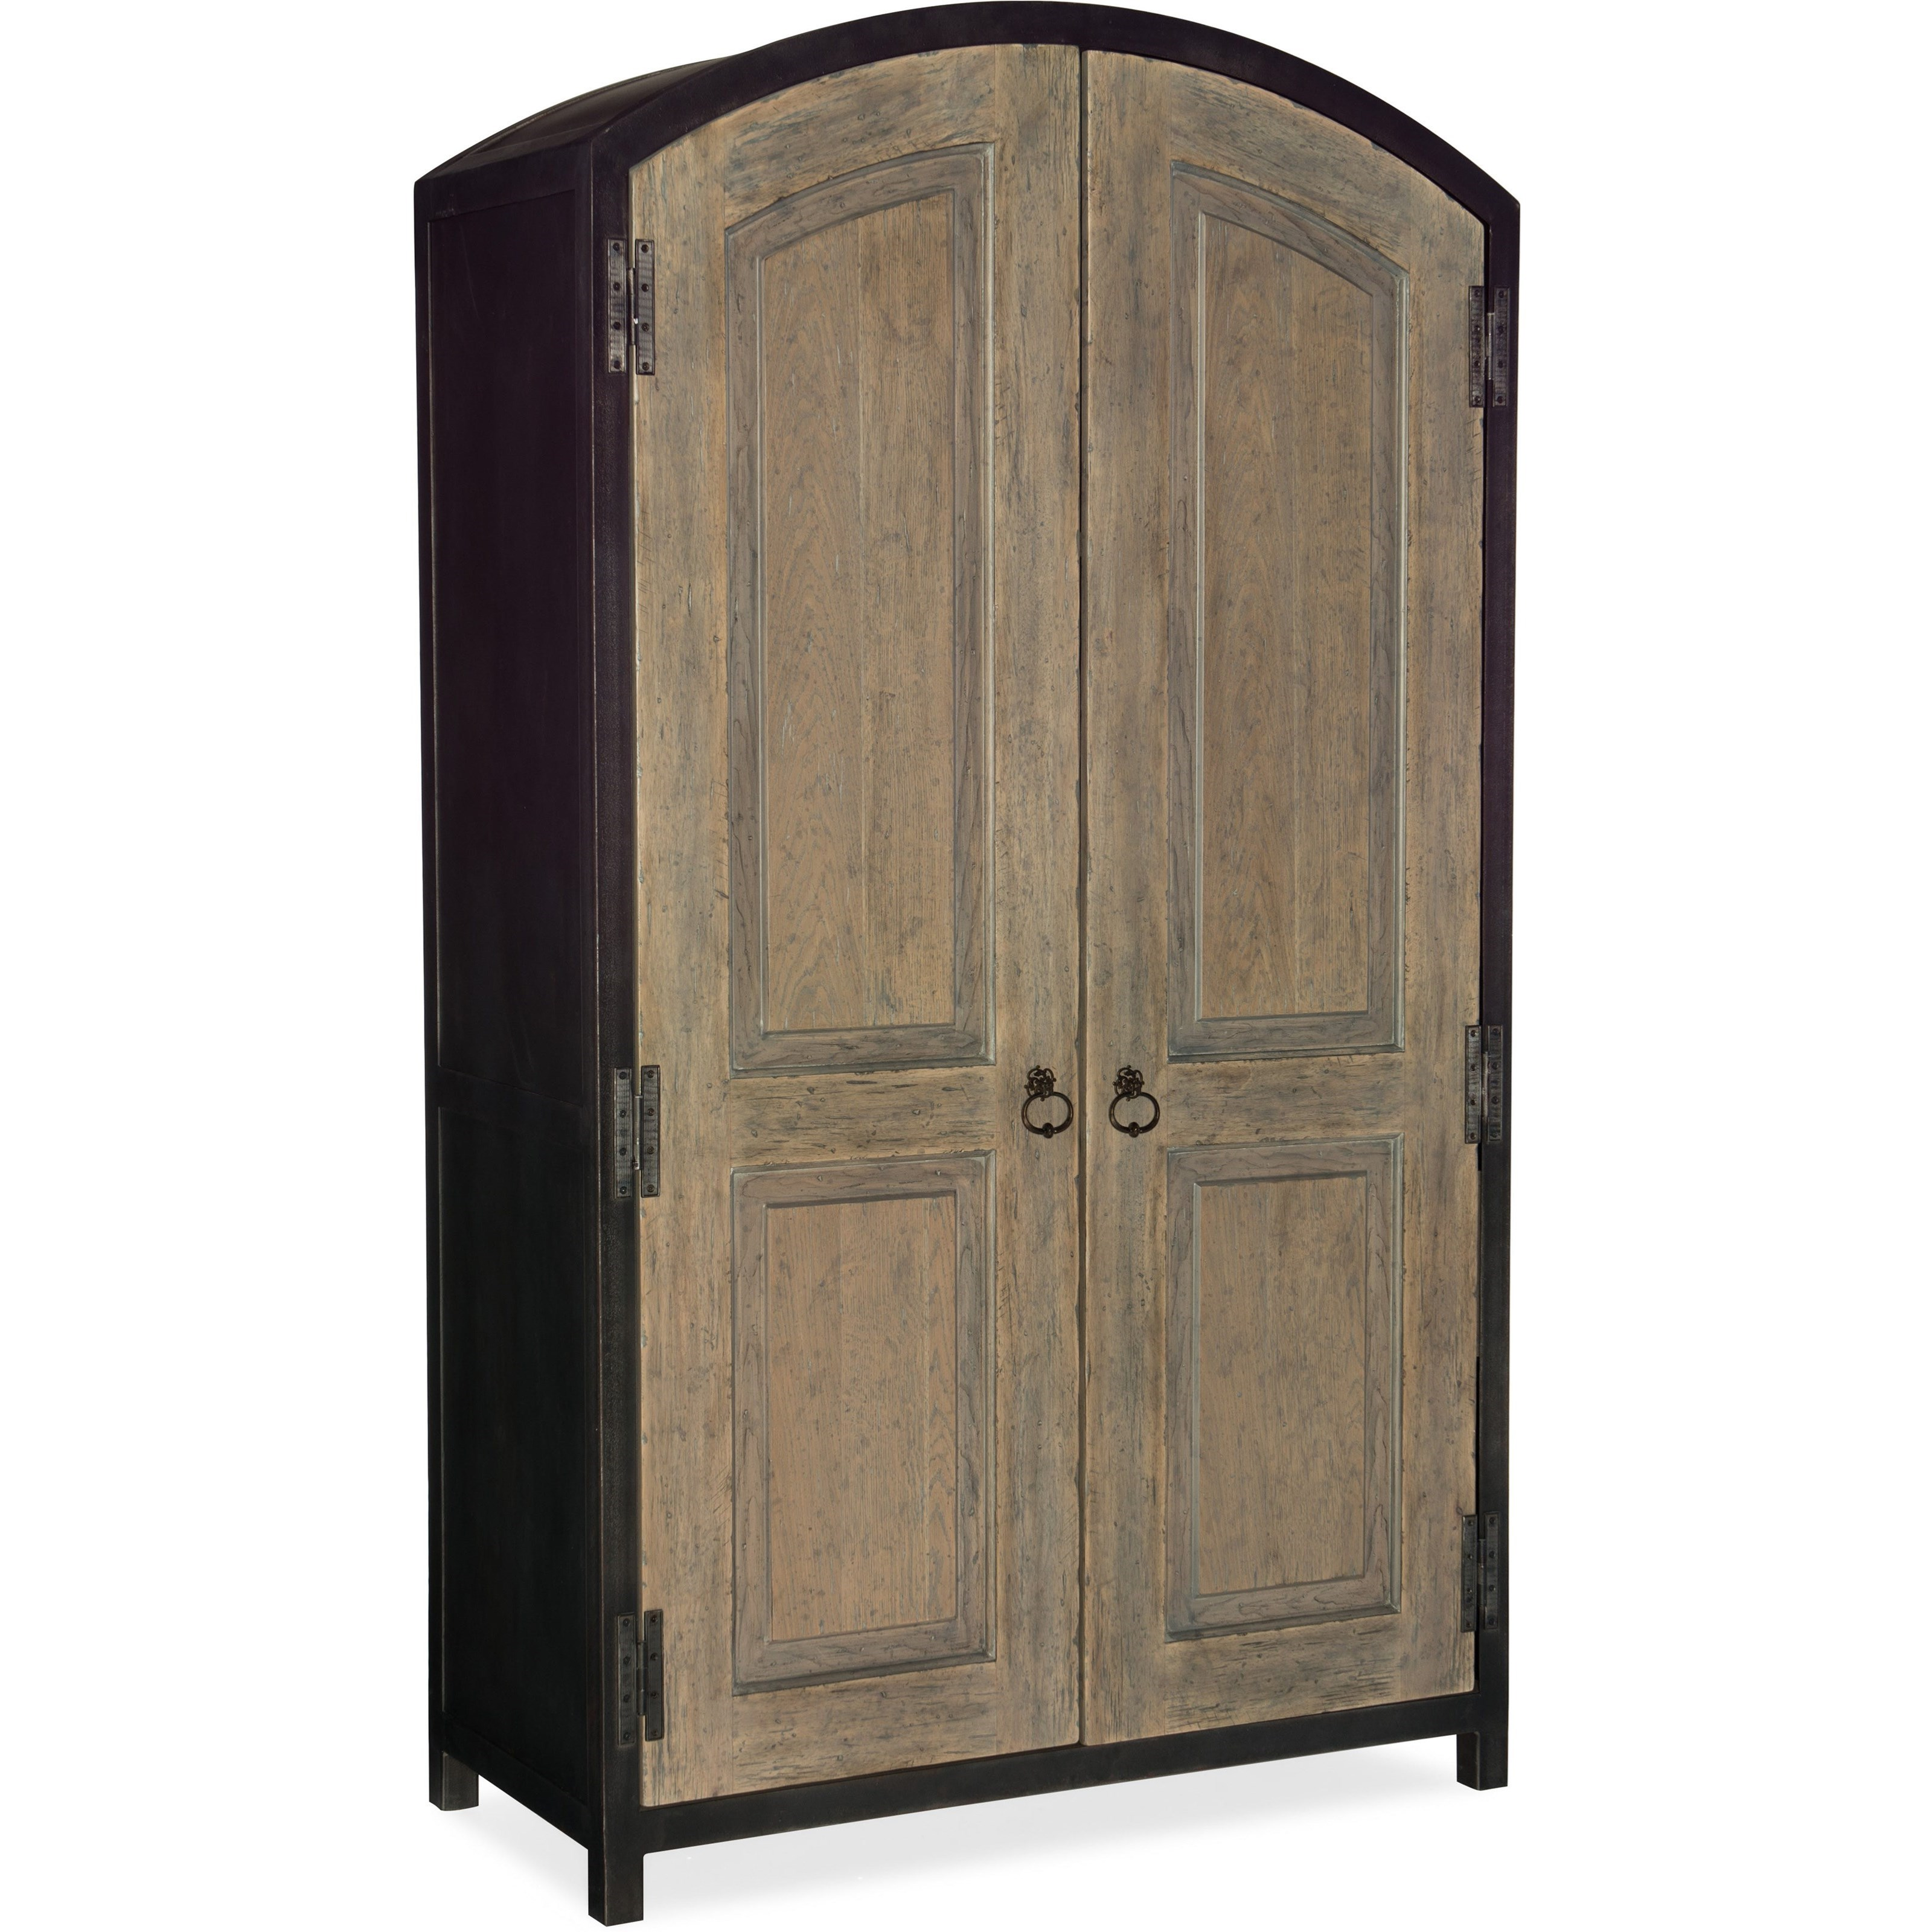 Beaumont Wardrobe by Hooker Furniture at Alison Craig Home Furnishings